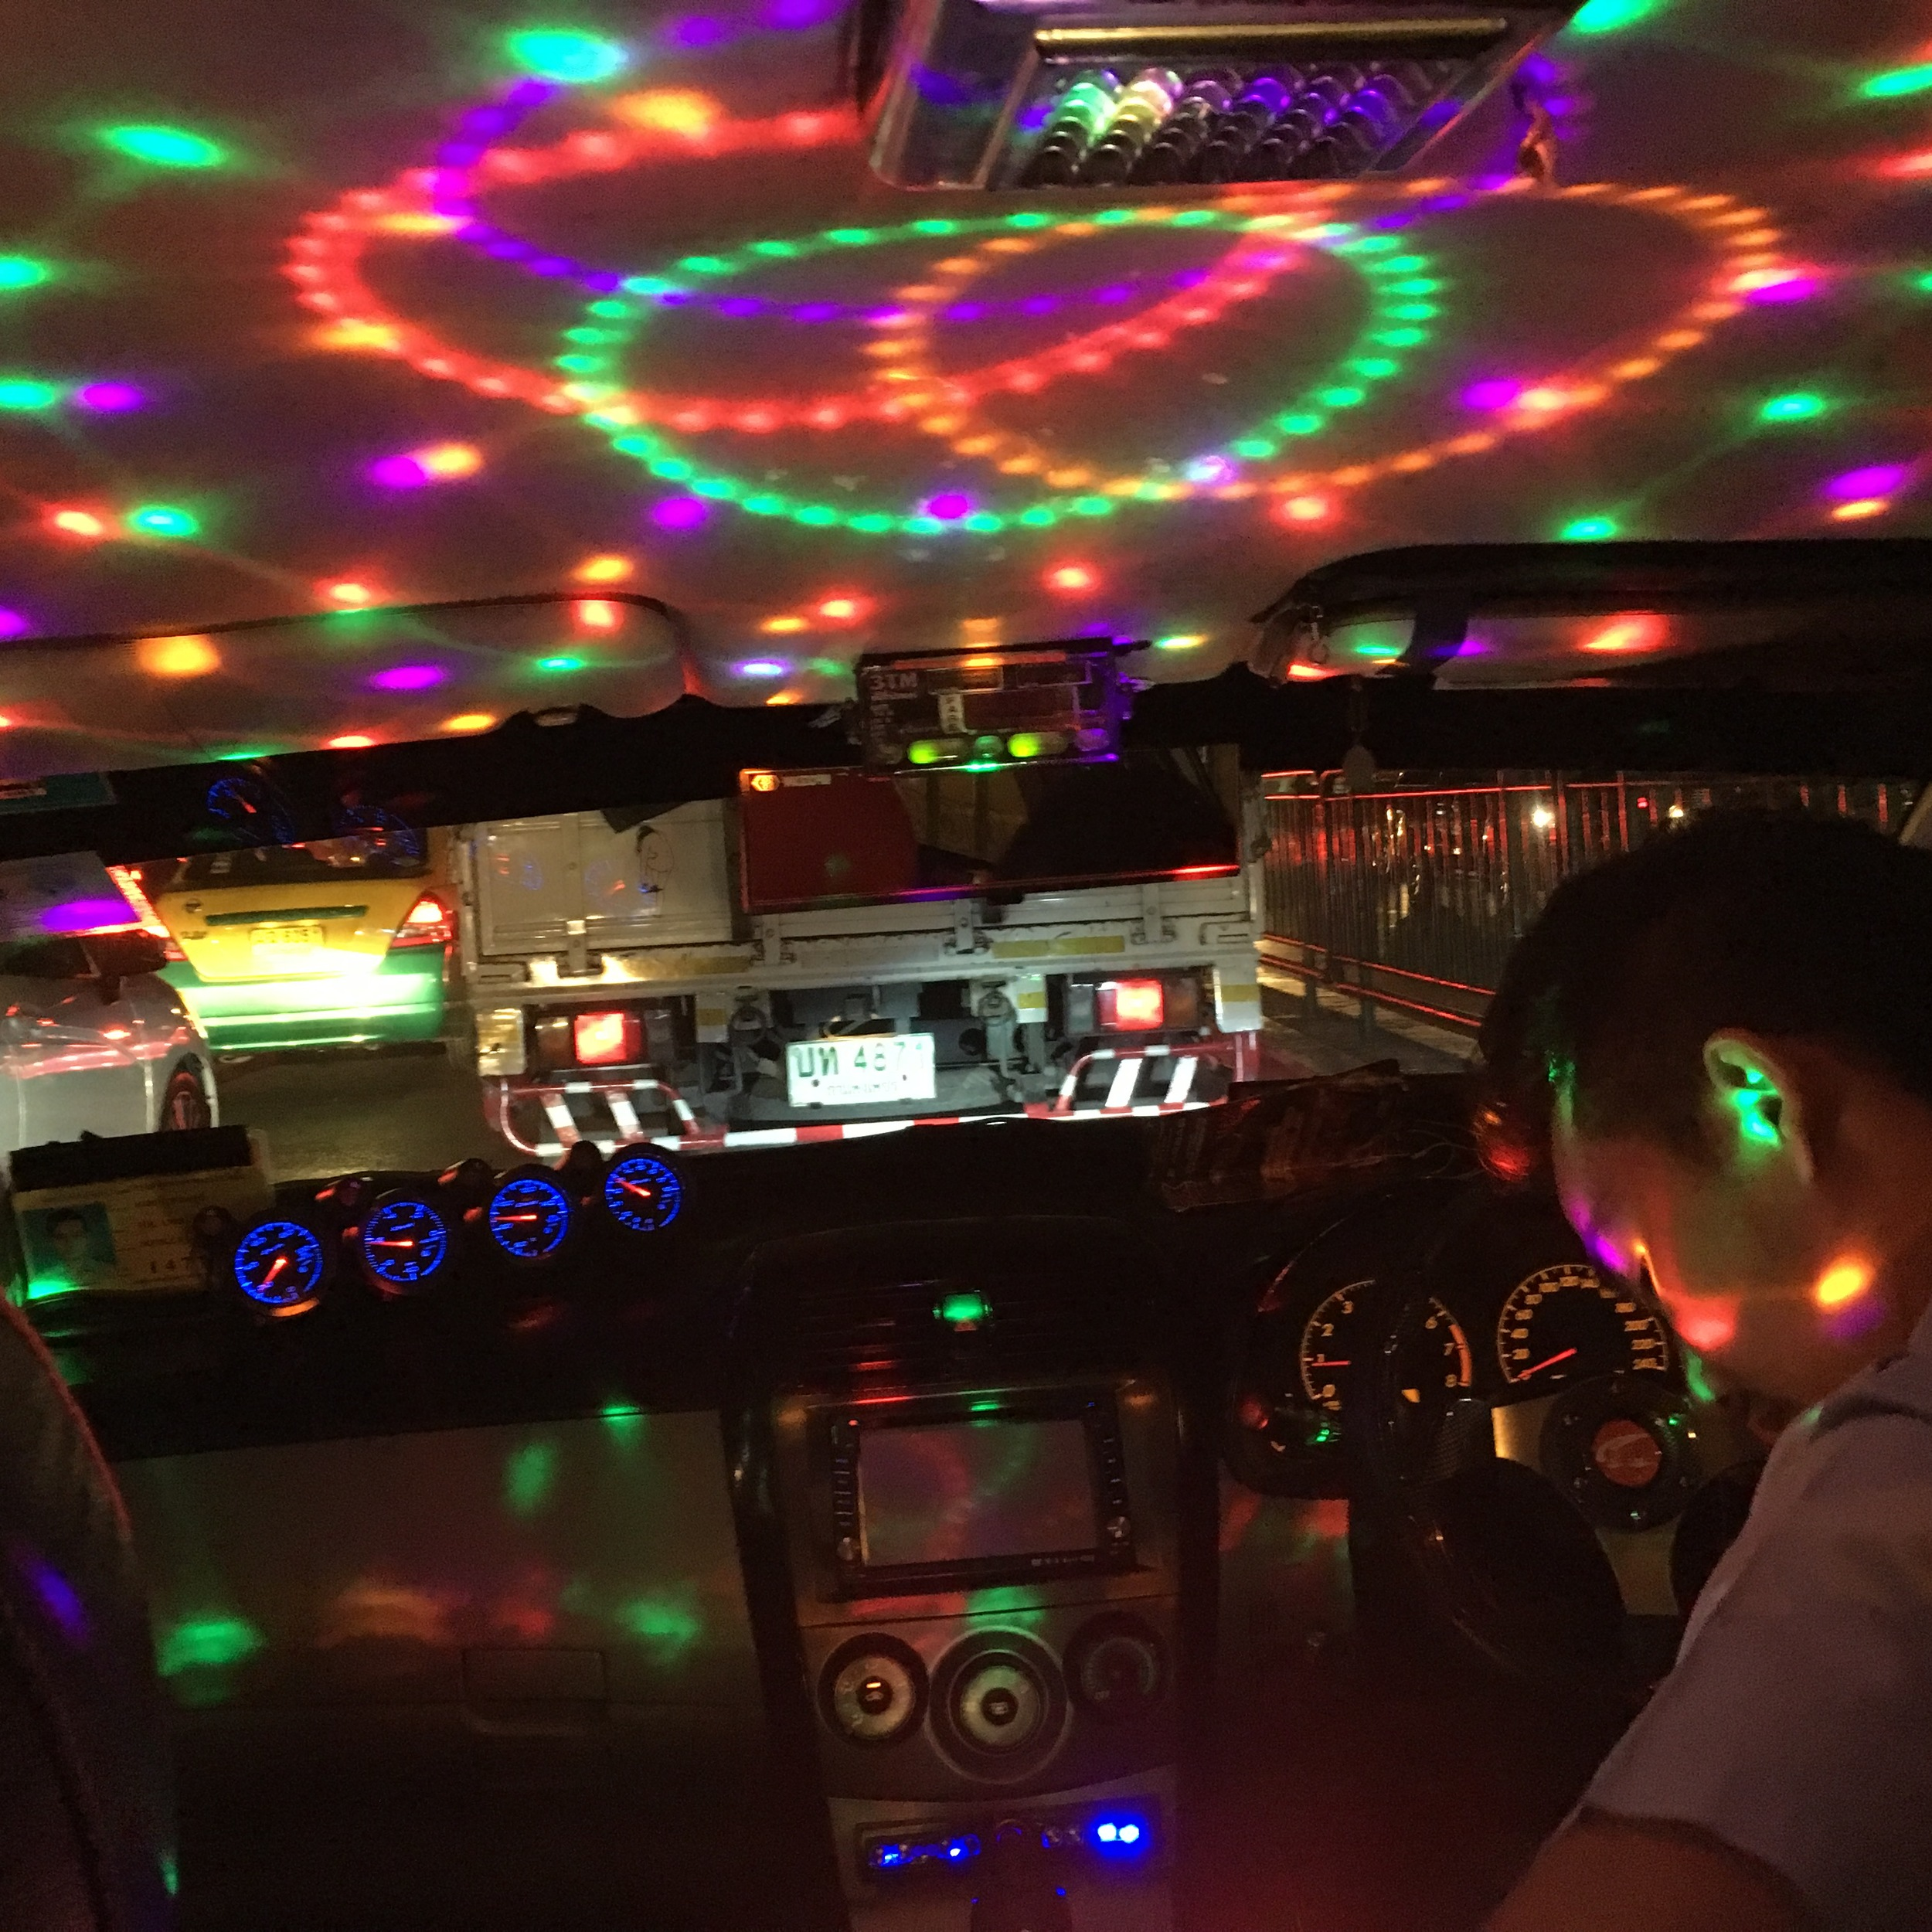 This was the inside of a taxi we took. Complete with disco lights, disco ball, and music turned up ALL the way. Man it was loud!